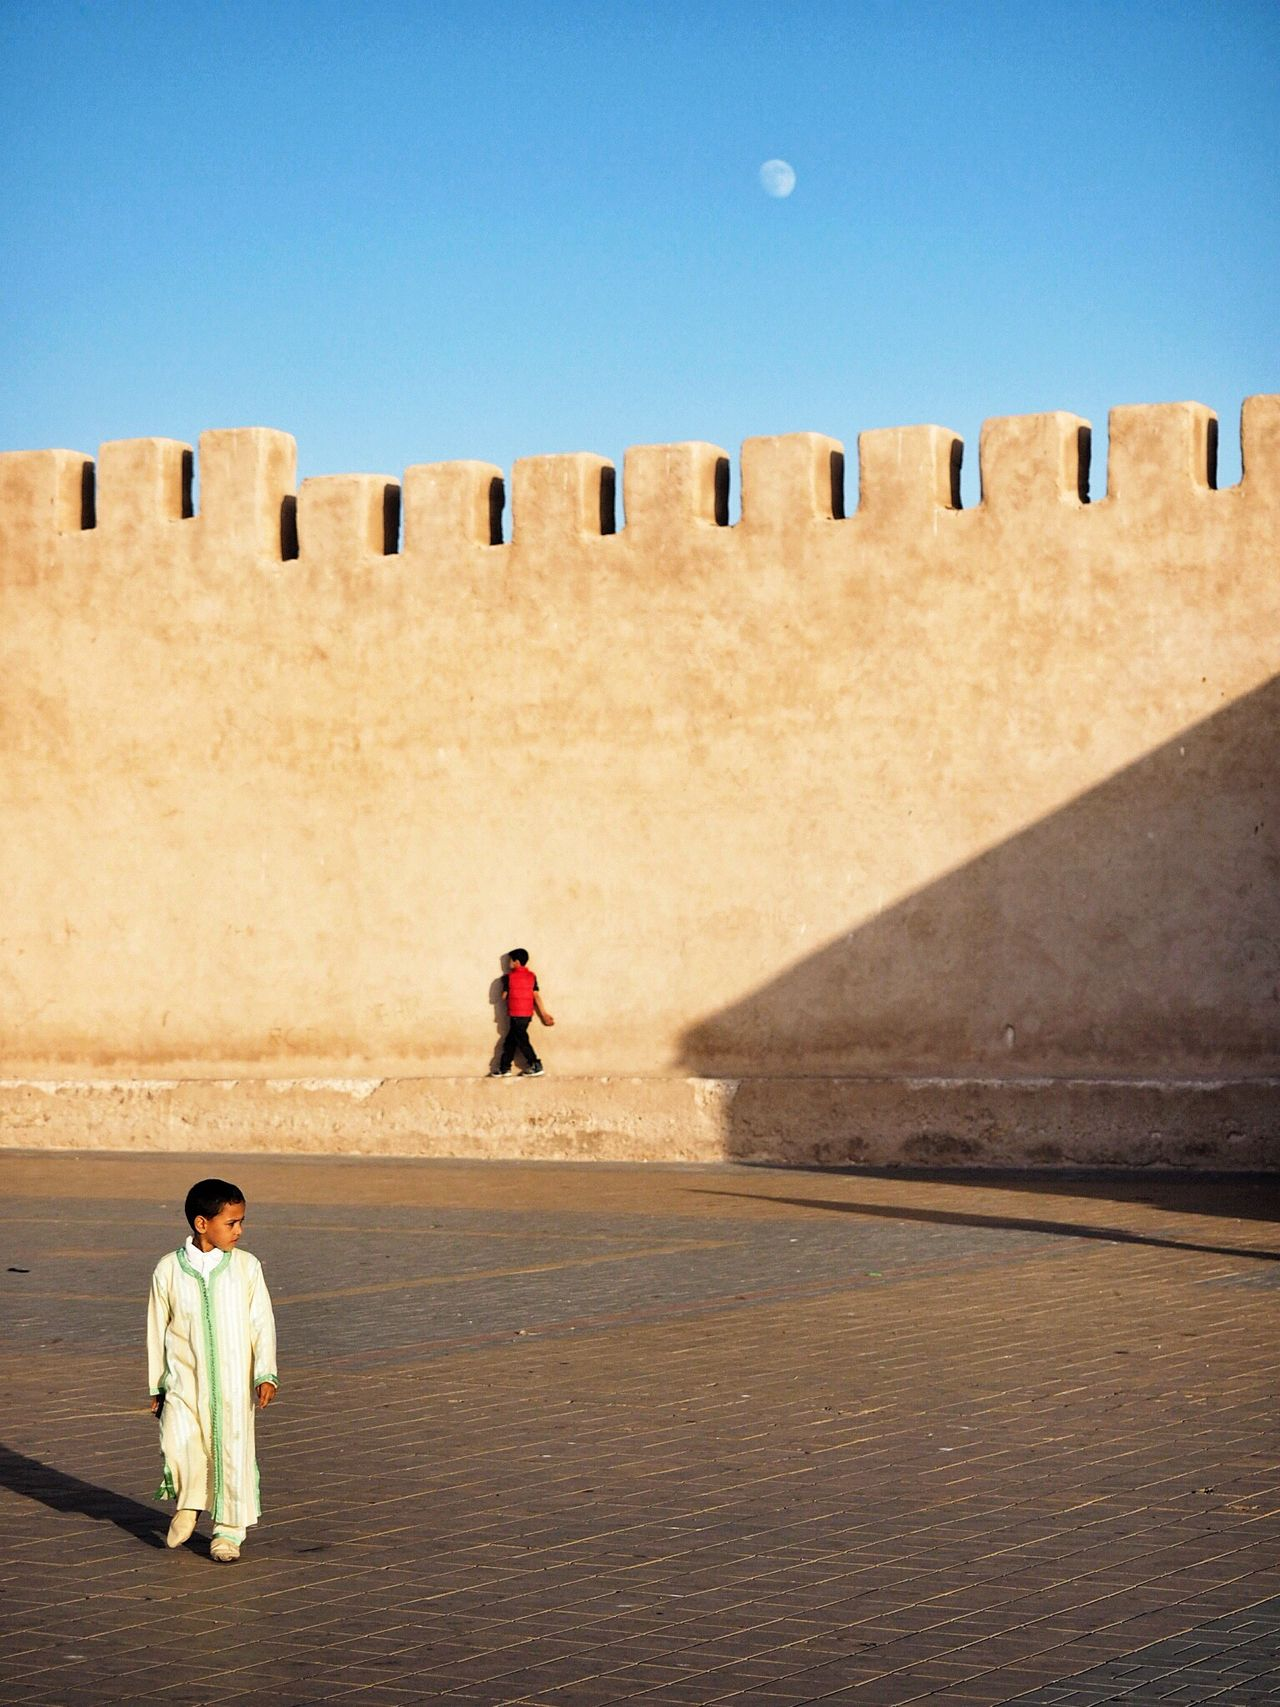 Catch me if you can // Essaouira (Morocco) Two People Real People Clear Sky Full Length Architecture Built Structure Boys Day Leisure Activity Men Sand Lifestyles Standing Outdoors Togetherness Adventure Sky Nature Adult People Streetphotography Morocco Essaouira The Photojournalist - 2017 EyeEm Awards